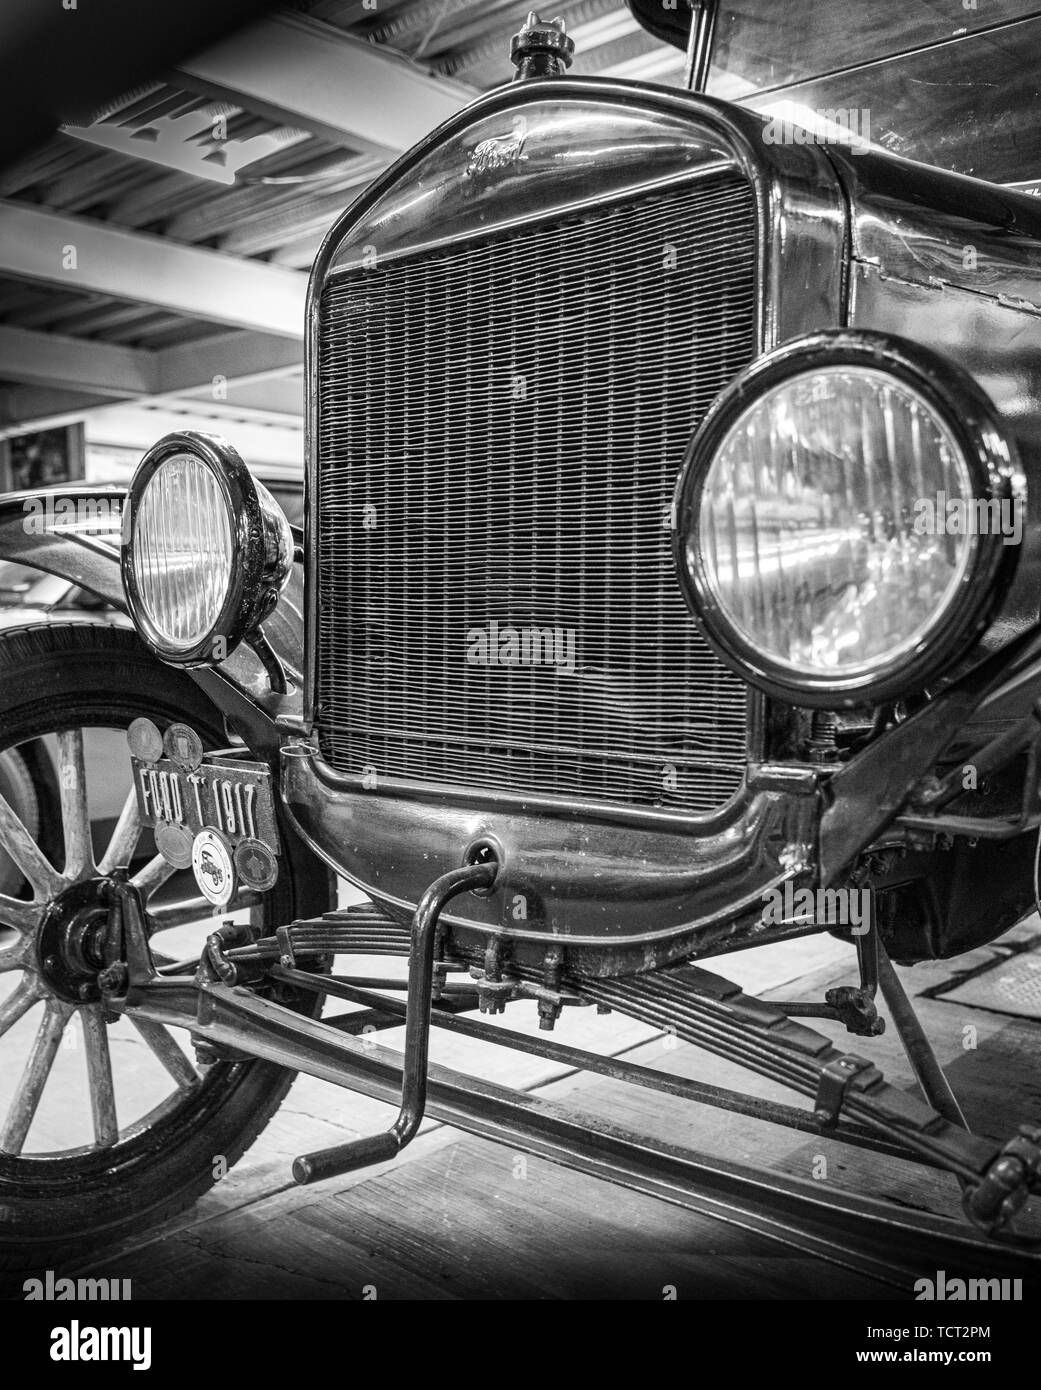 Ford Model T at the Museo de Automovil in Puebla, Mexico. - Stock Image